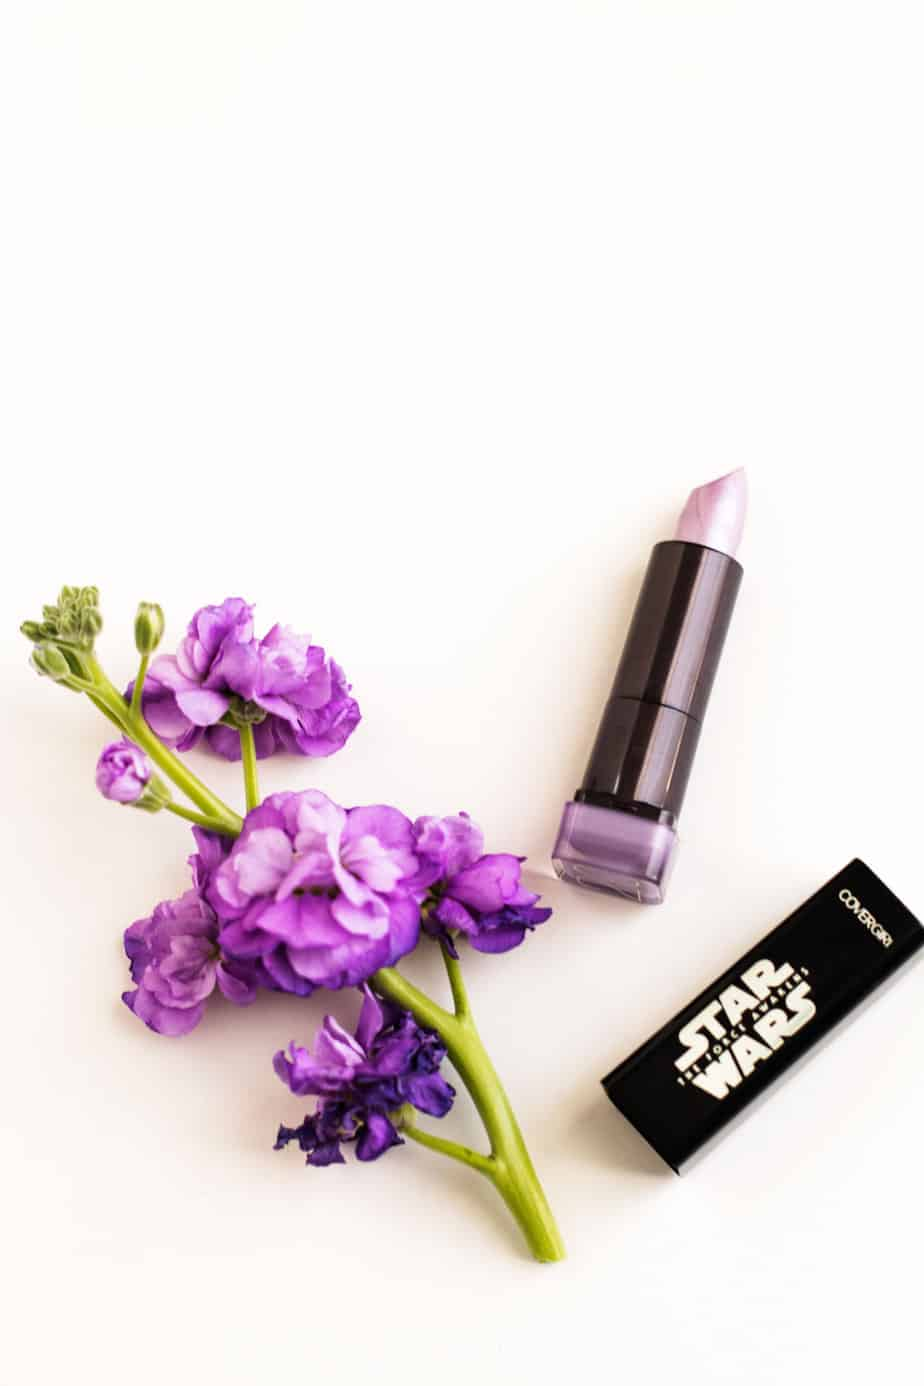 starwars-make-up-collection